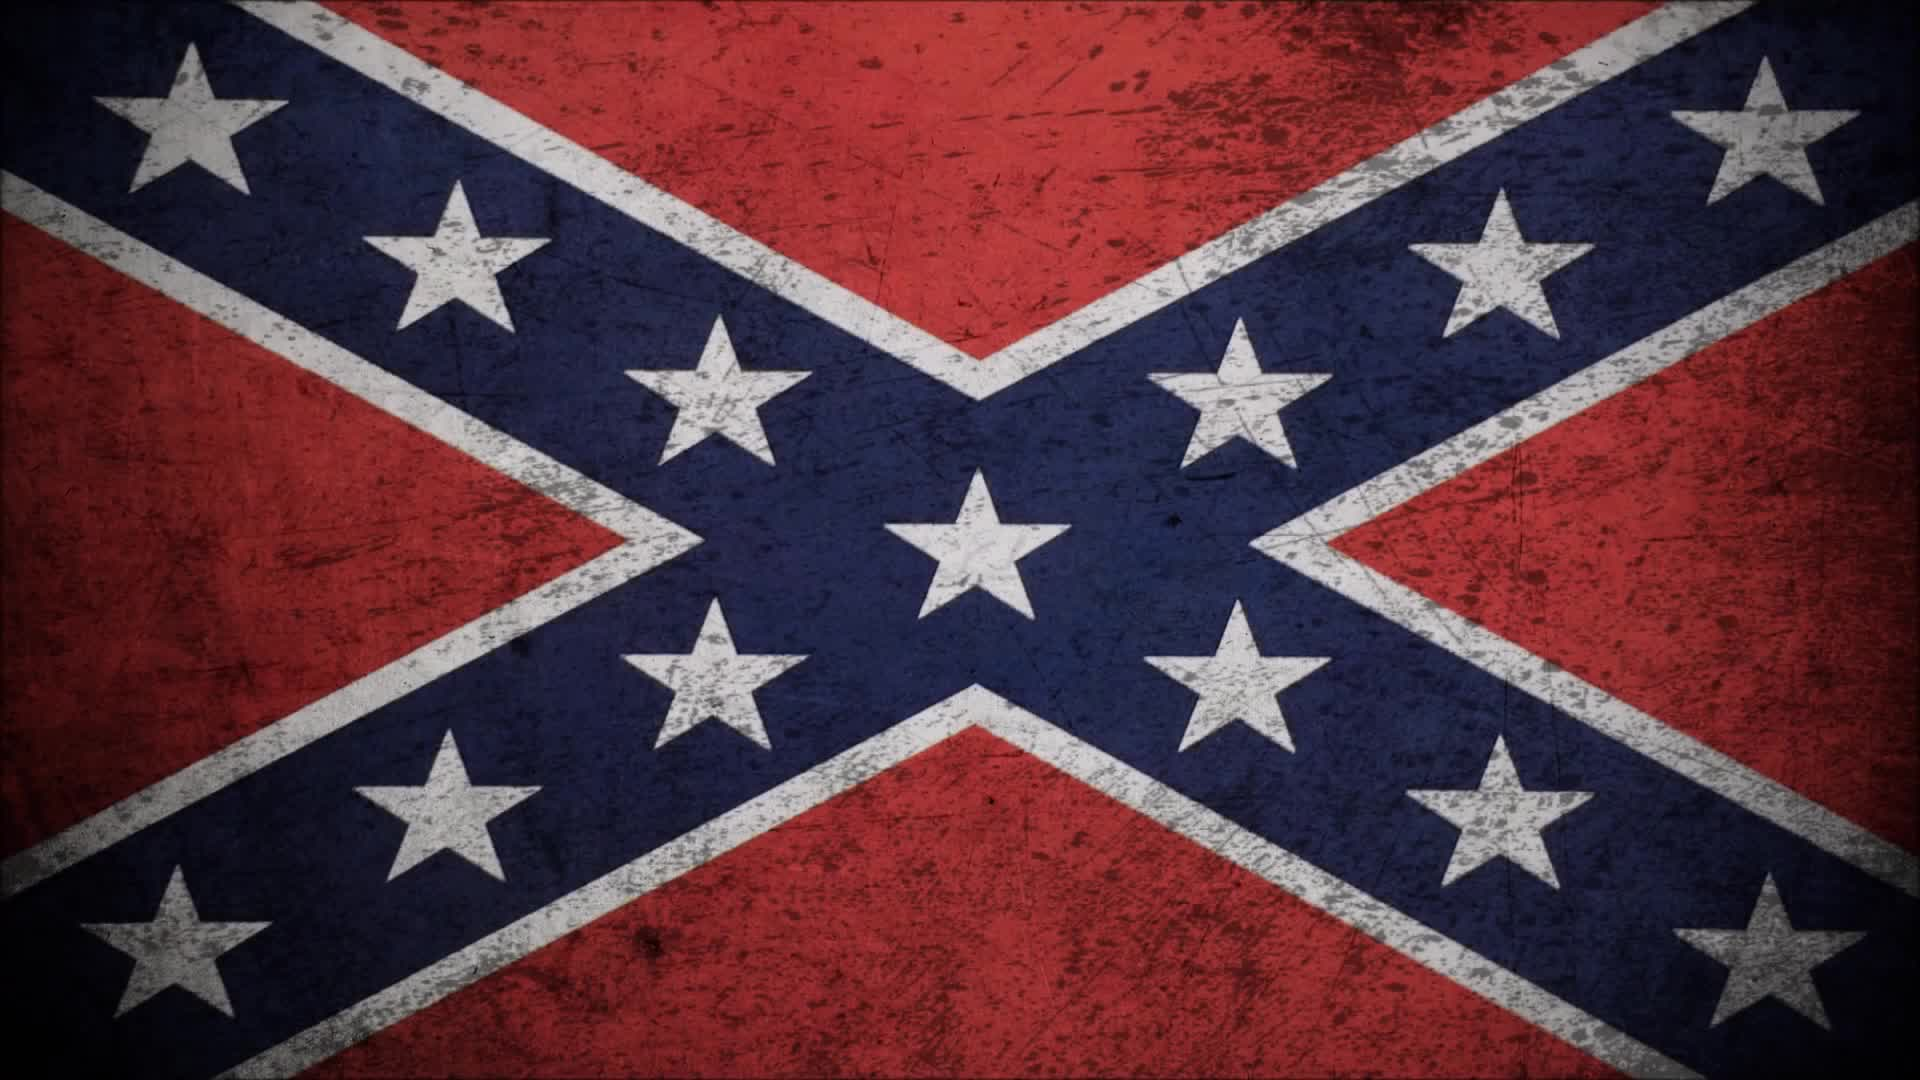 To arms in Dixie! Marching Song of the Confederate States of America